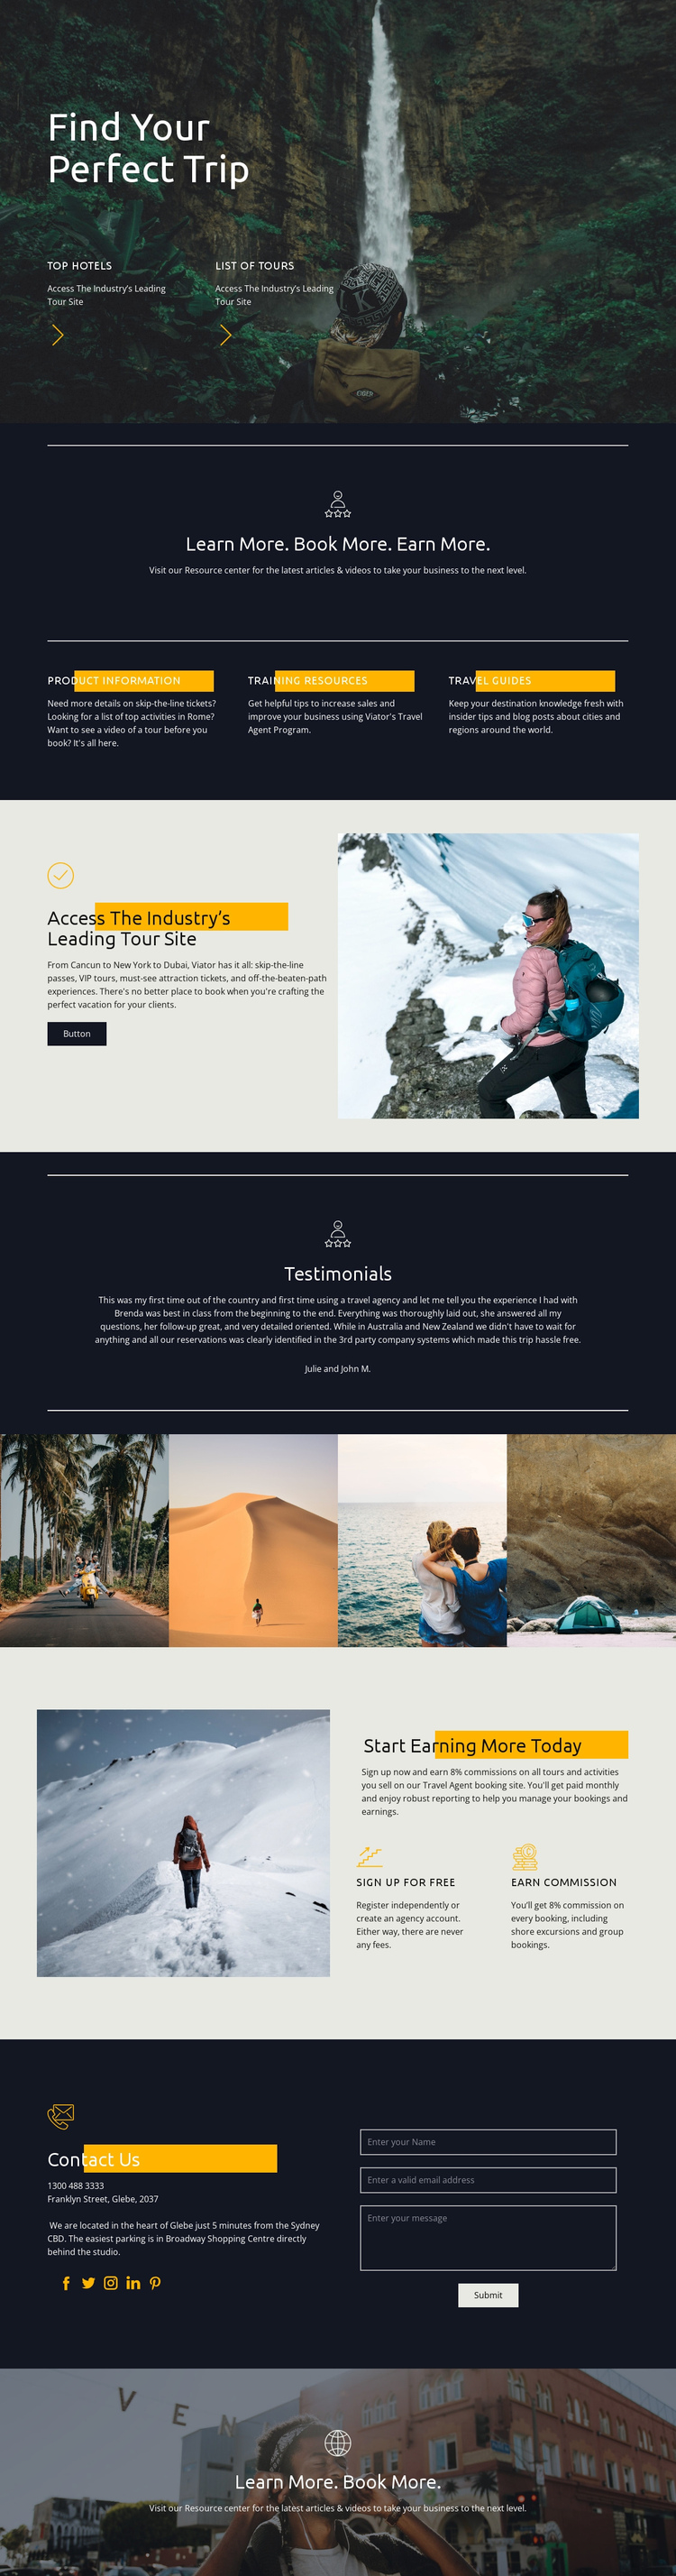 Find your perfect travel Website Builder Software